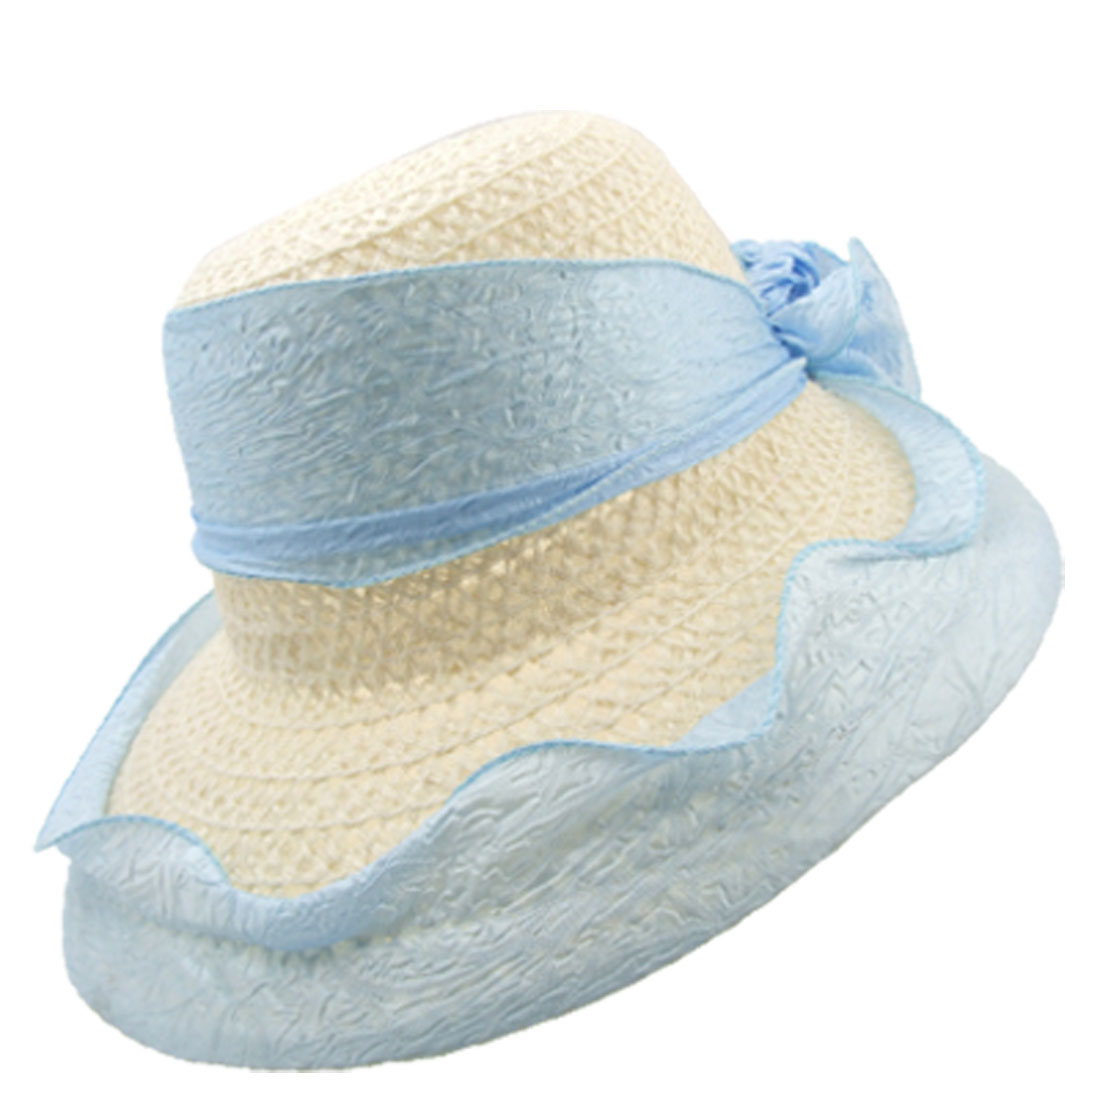 Modish White Flax Mesh Cloth Outdoor Sun Hat with Baby Blue Flower